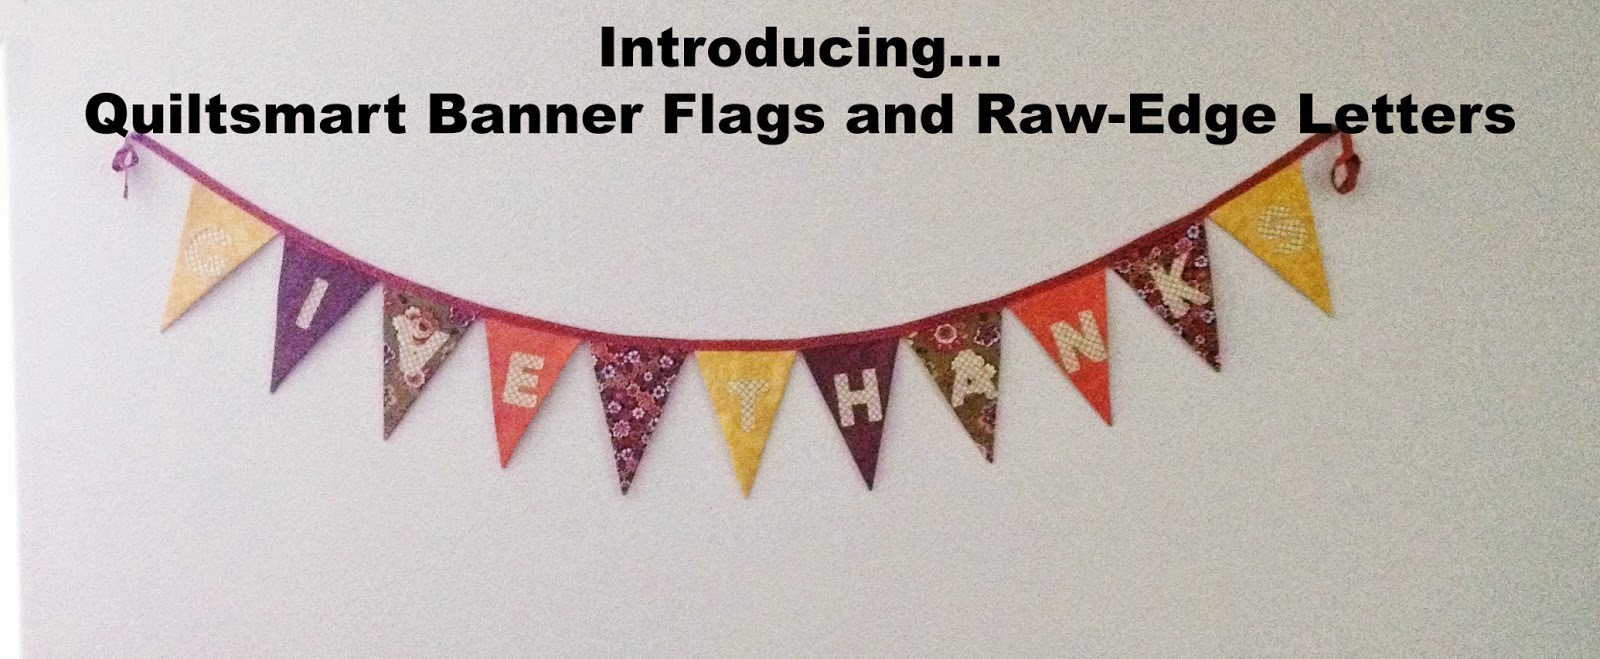 Quiltsmart Banner Flags and Quiltsmart Raw-Edge Letters